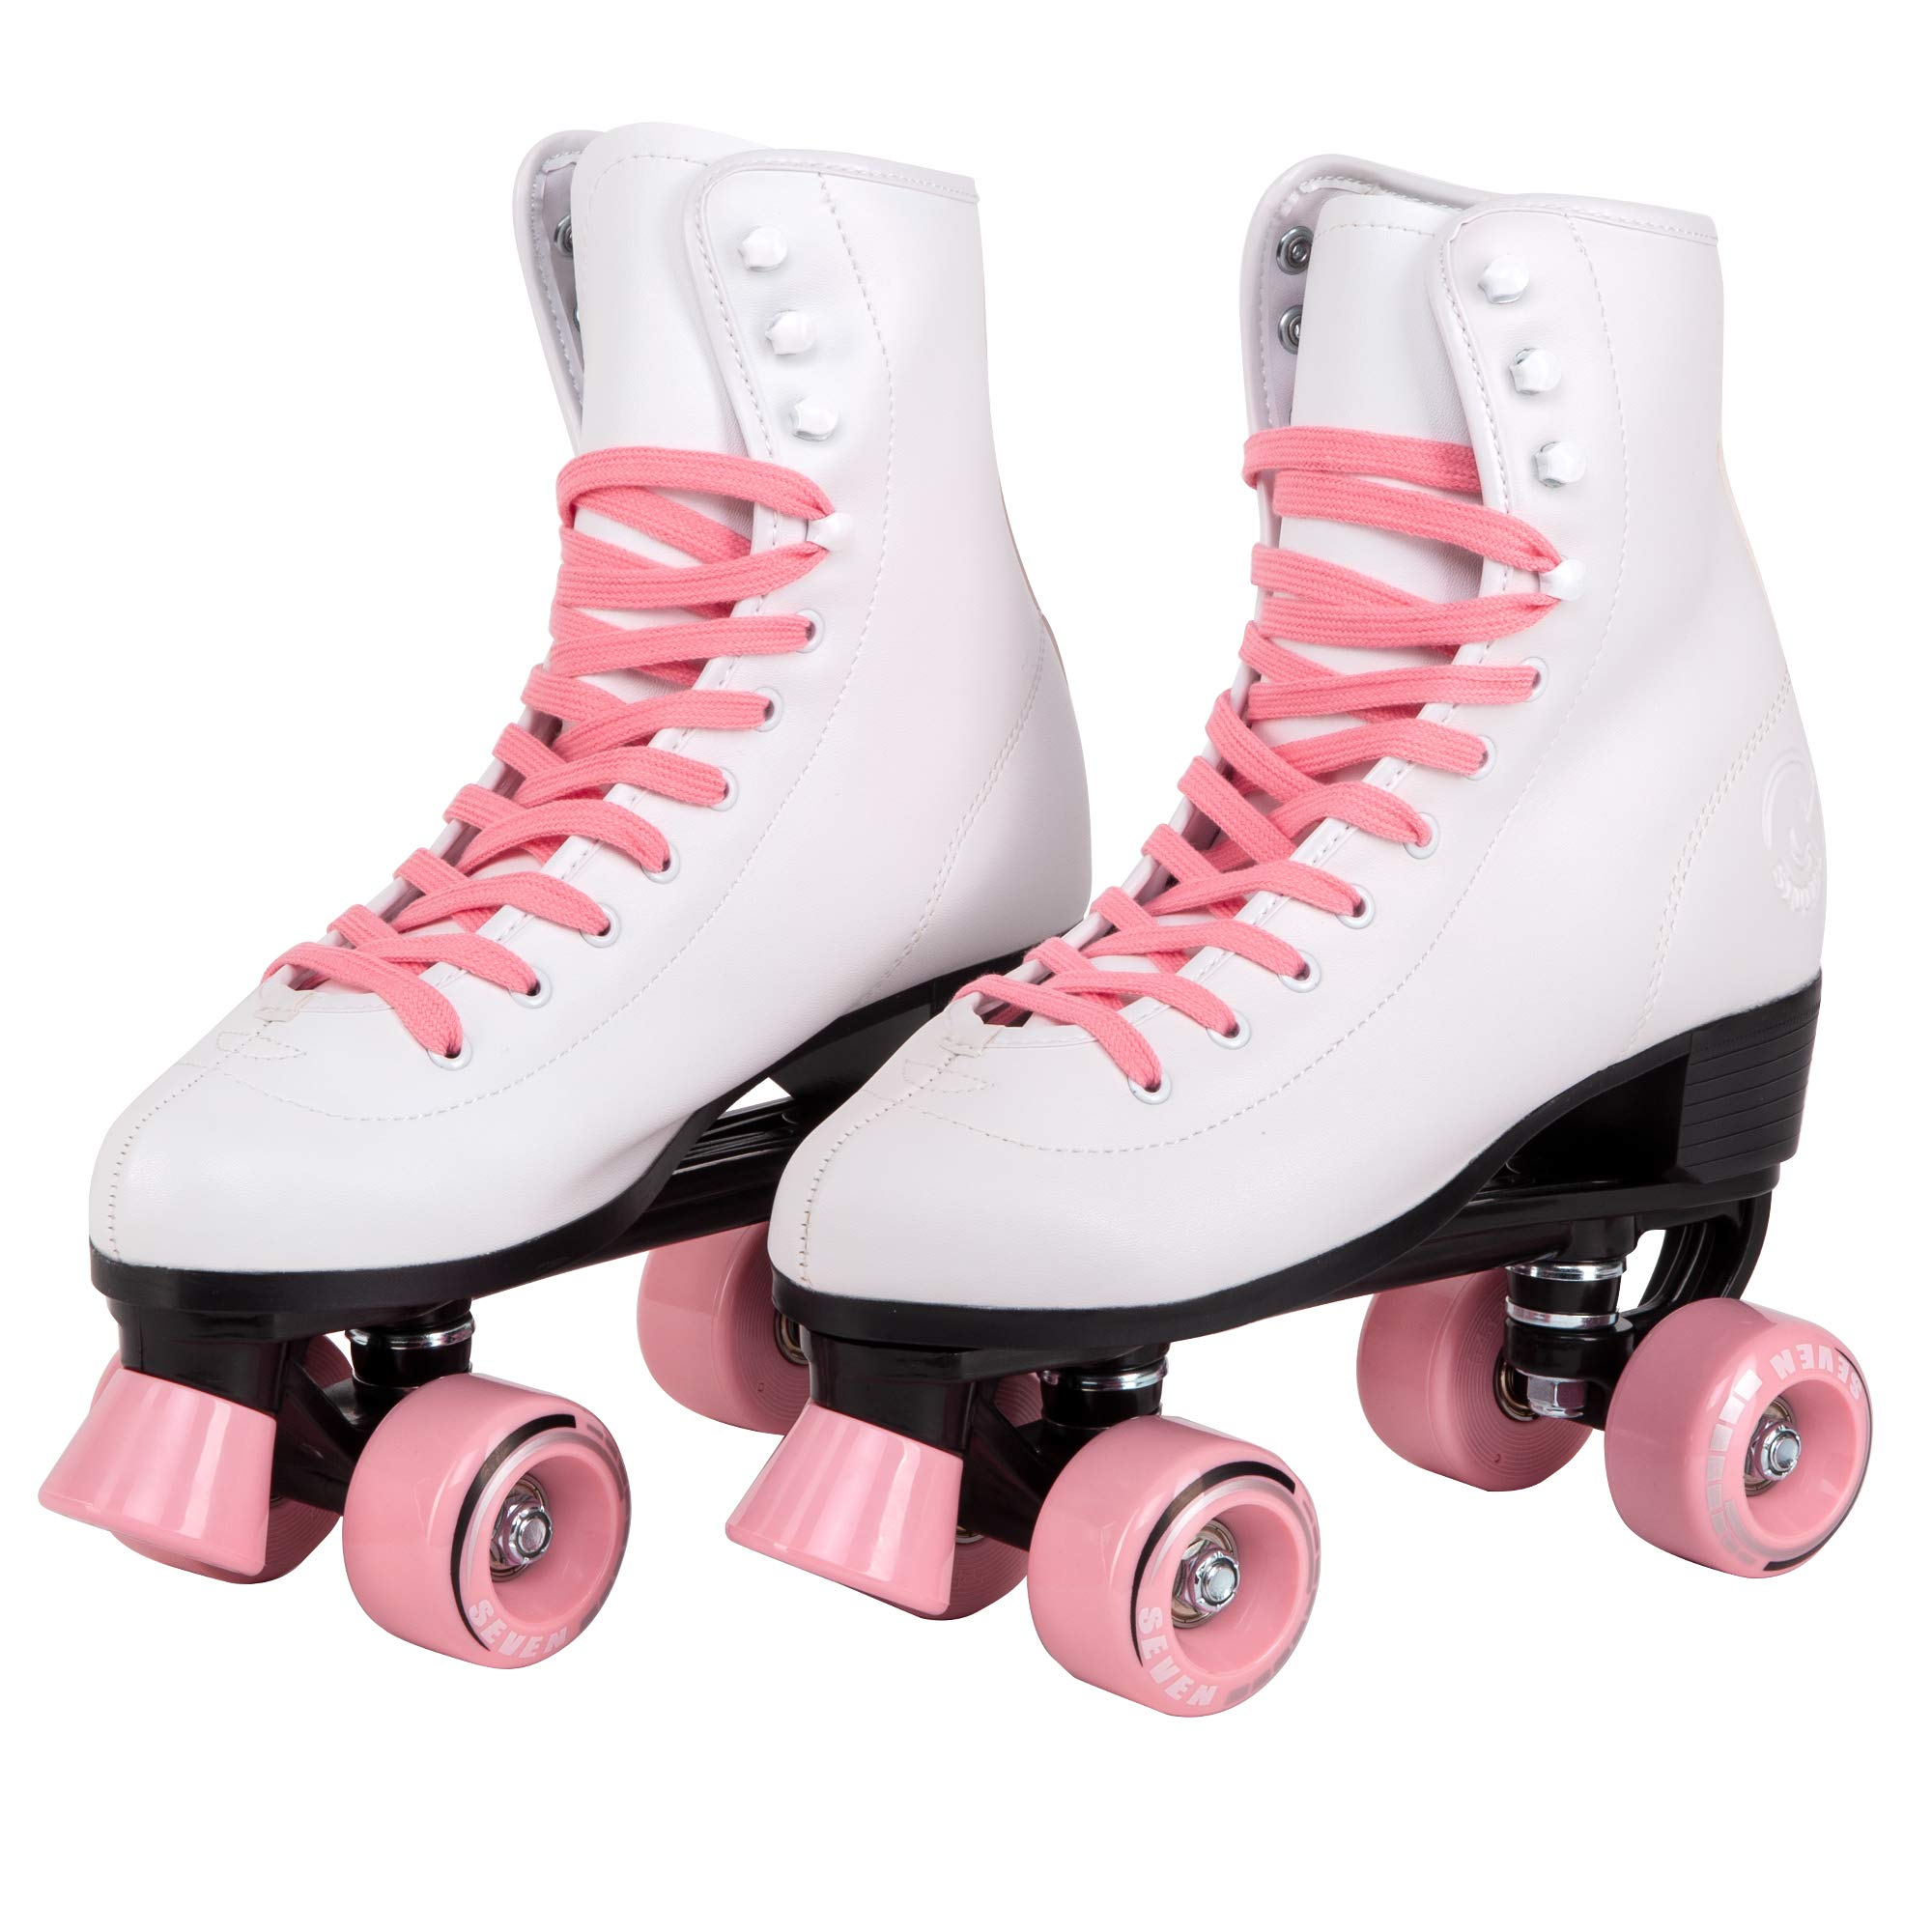 C7 Classic Roller Skates | Retro Soft Boot with Faux Leather | Speedy Quad Style for Men, Women and Kids (Coral/Youth 4 / Women's 5)